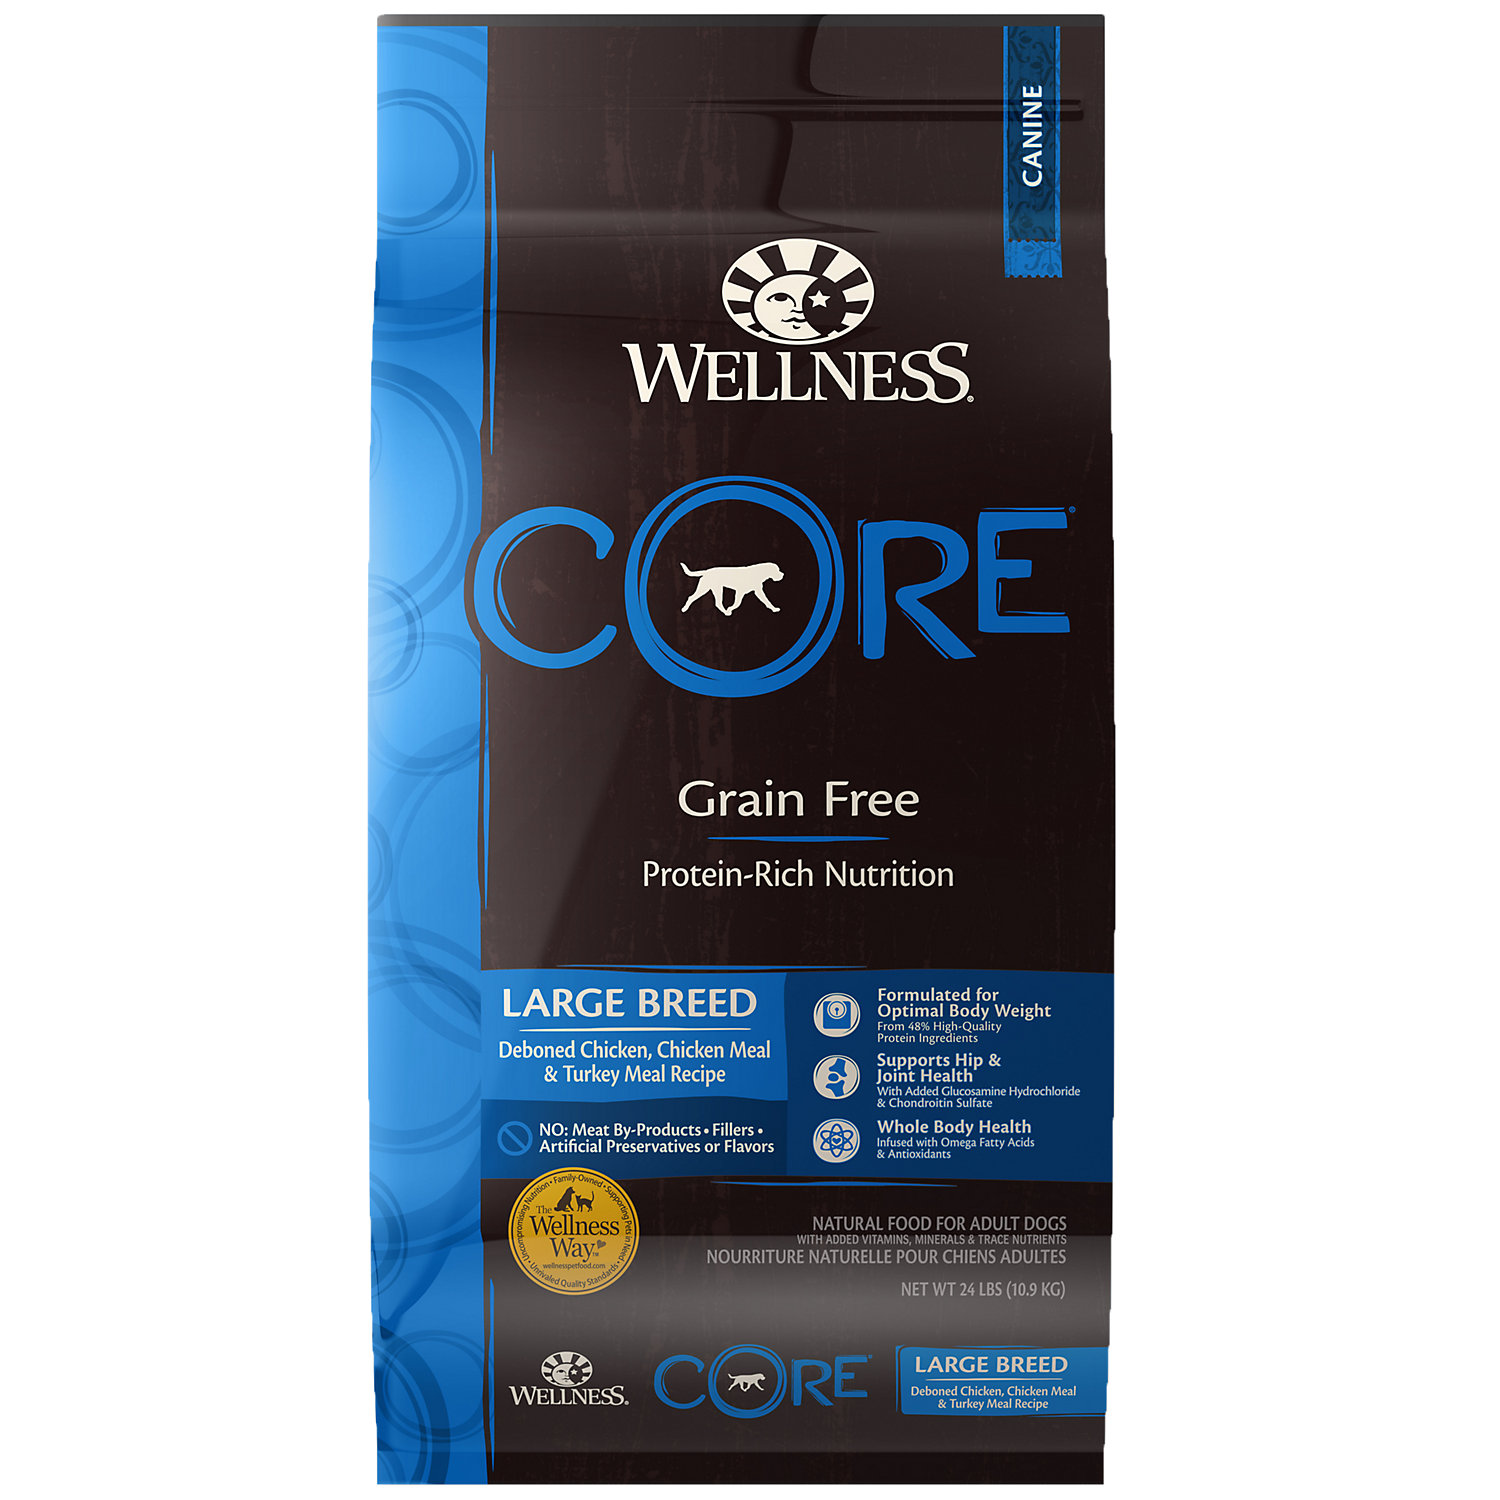 076344884545 Upc Wellness Core Large Breed Dry Dog Food